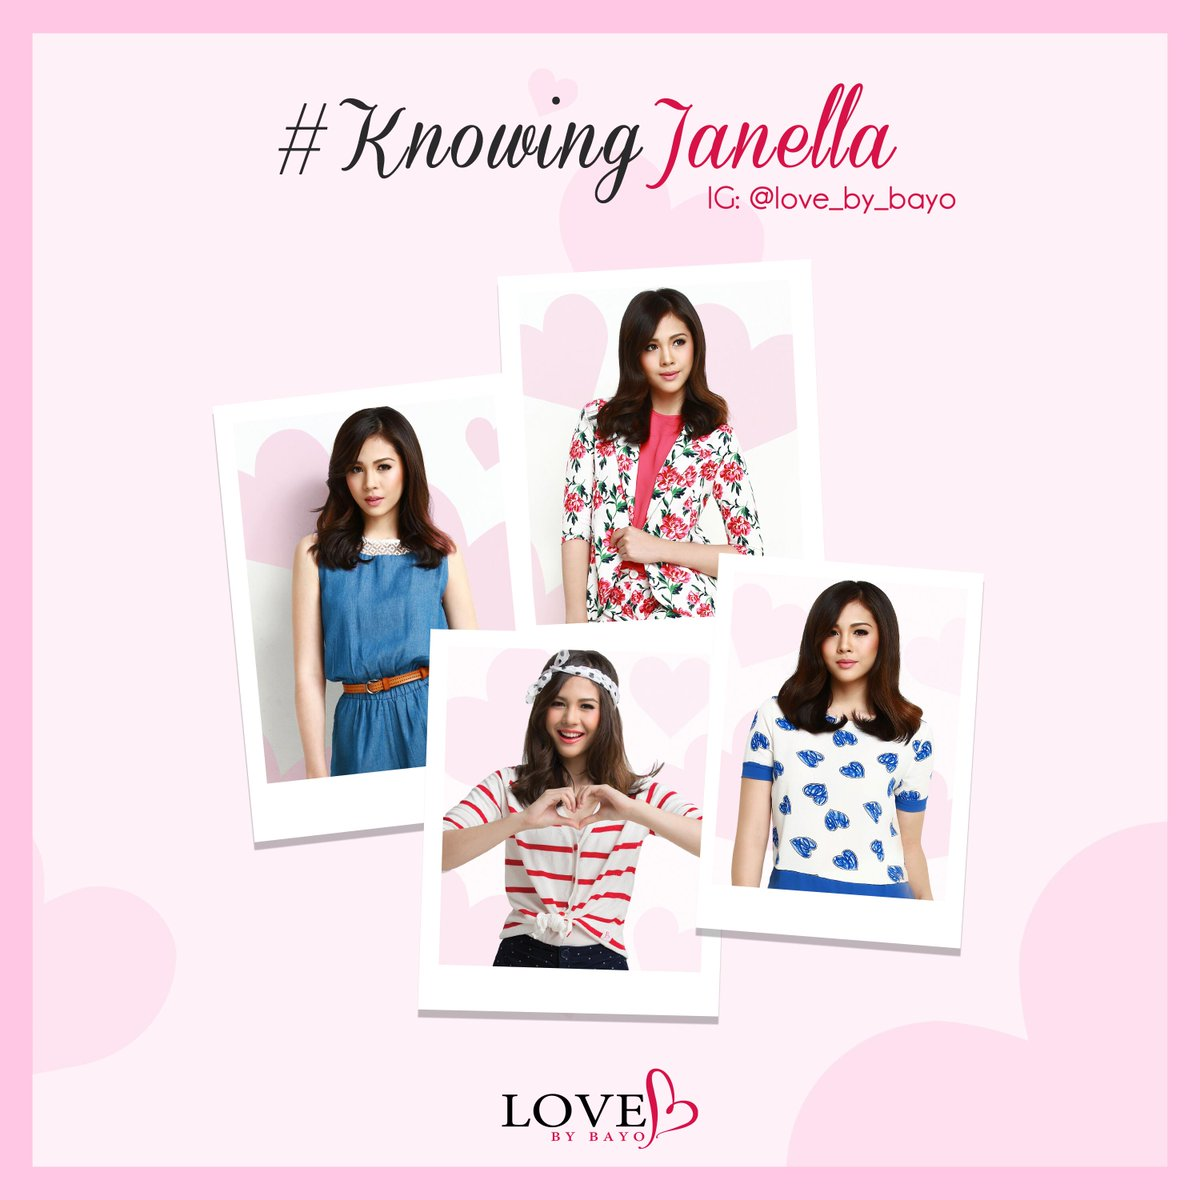 Get to know Janella Salvador! Exclusive infographics about our Bayo girl at http://t.co/fTfq2esQID! ❤️ Follow us! http://t.co/GlrZlsMvIi